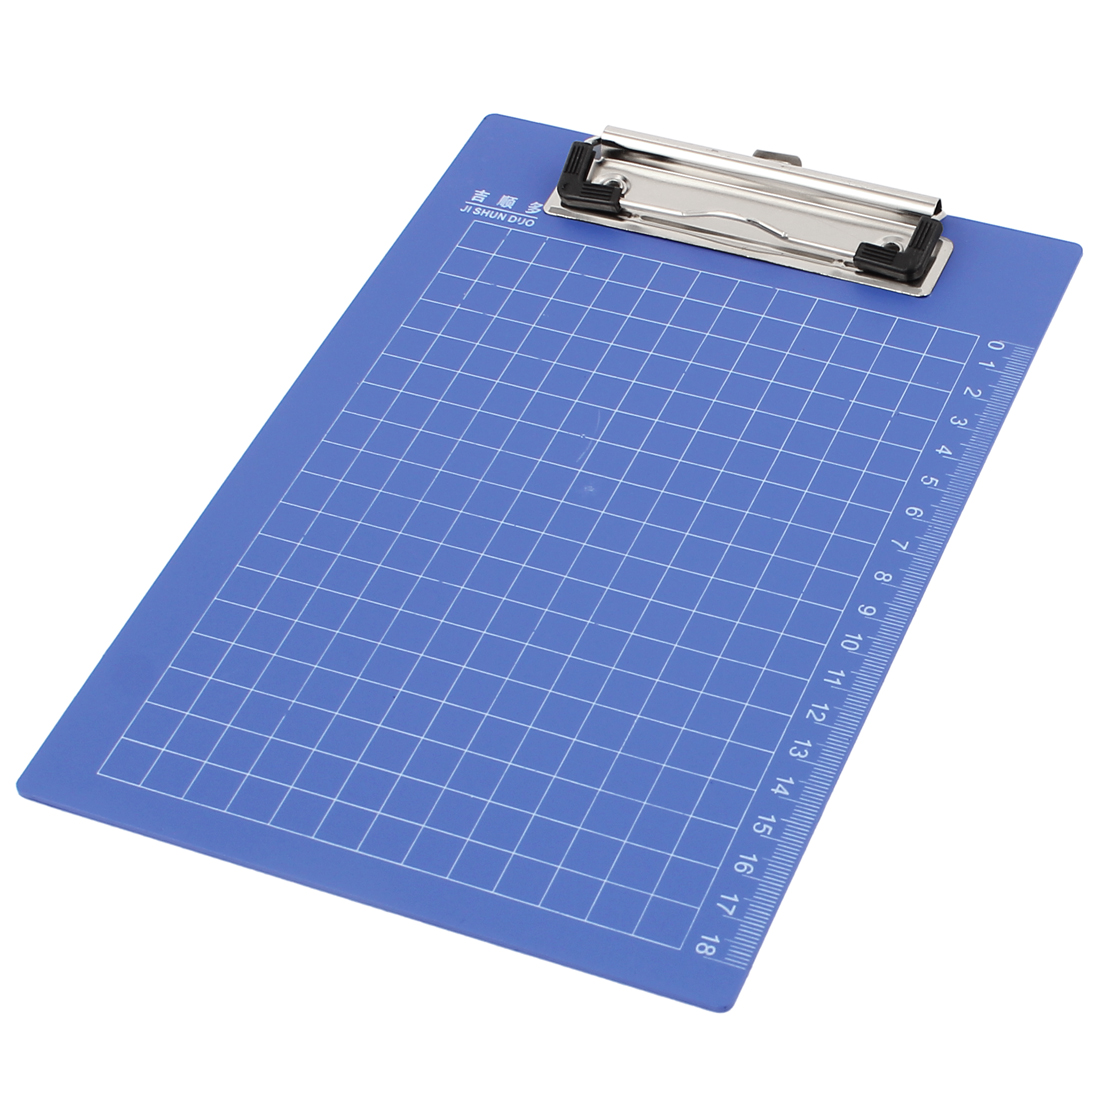 Grid Printed Measurement Scale Office File Writing Clipboard Paper Holder Blue